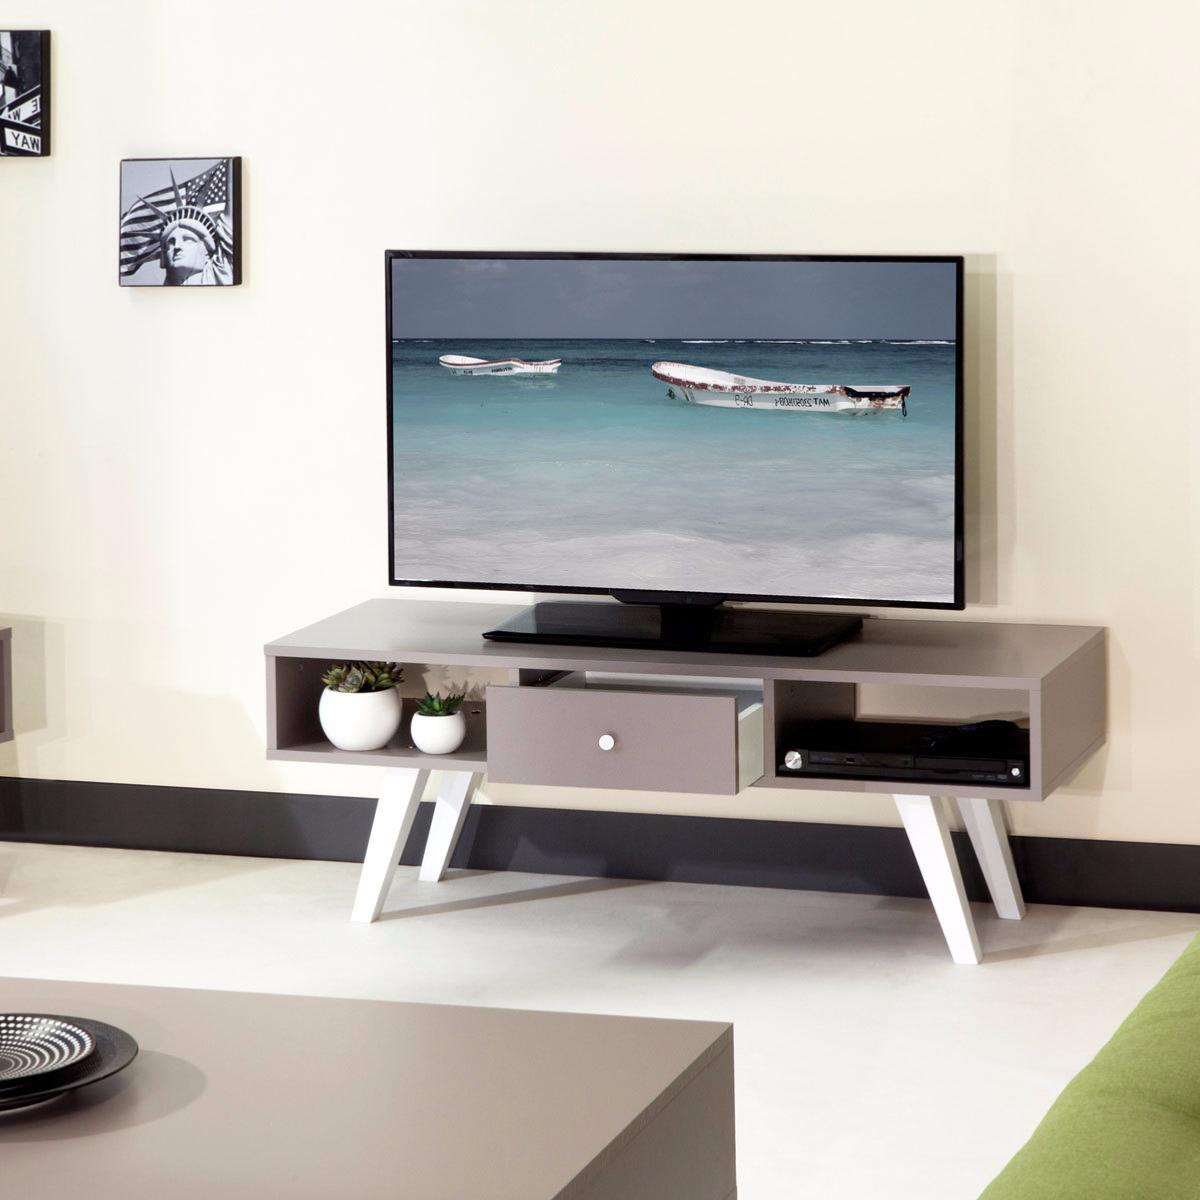 Meuble Tv Scandinave Taupe Blanc Cielterre Commerce